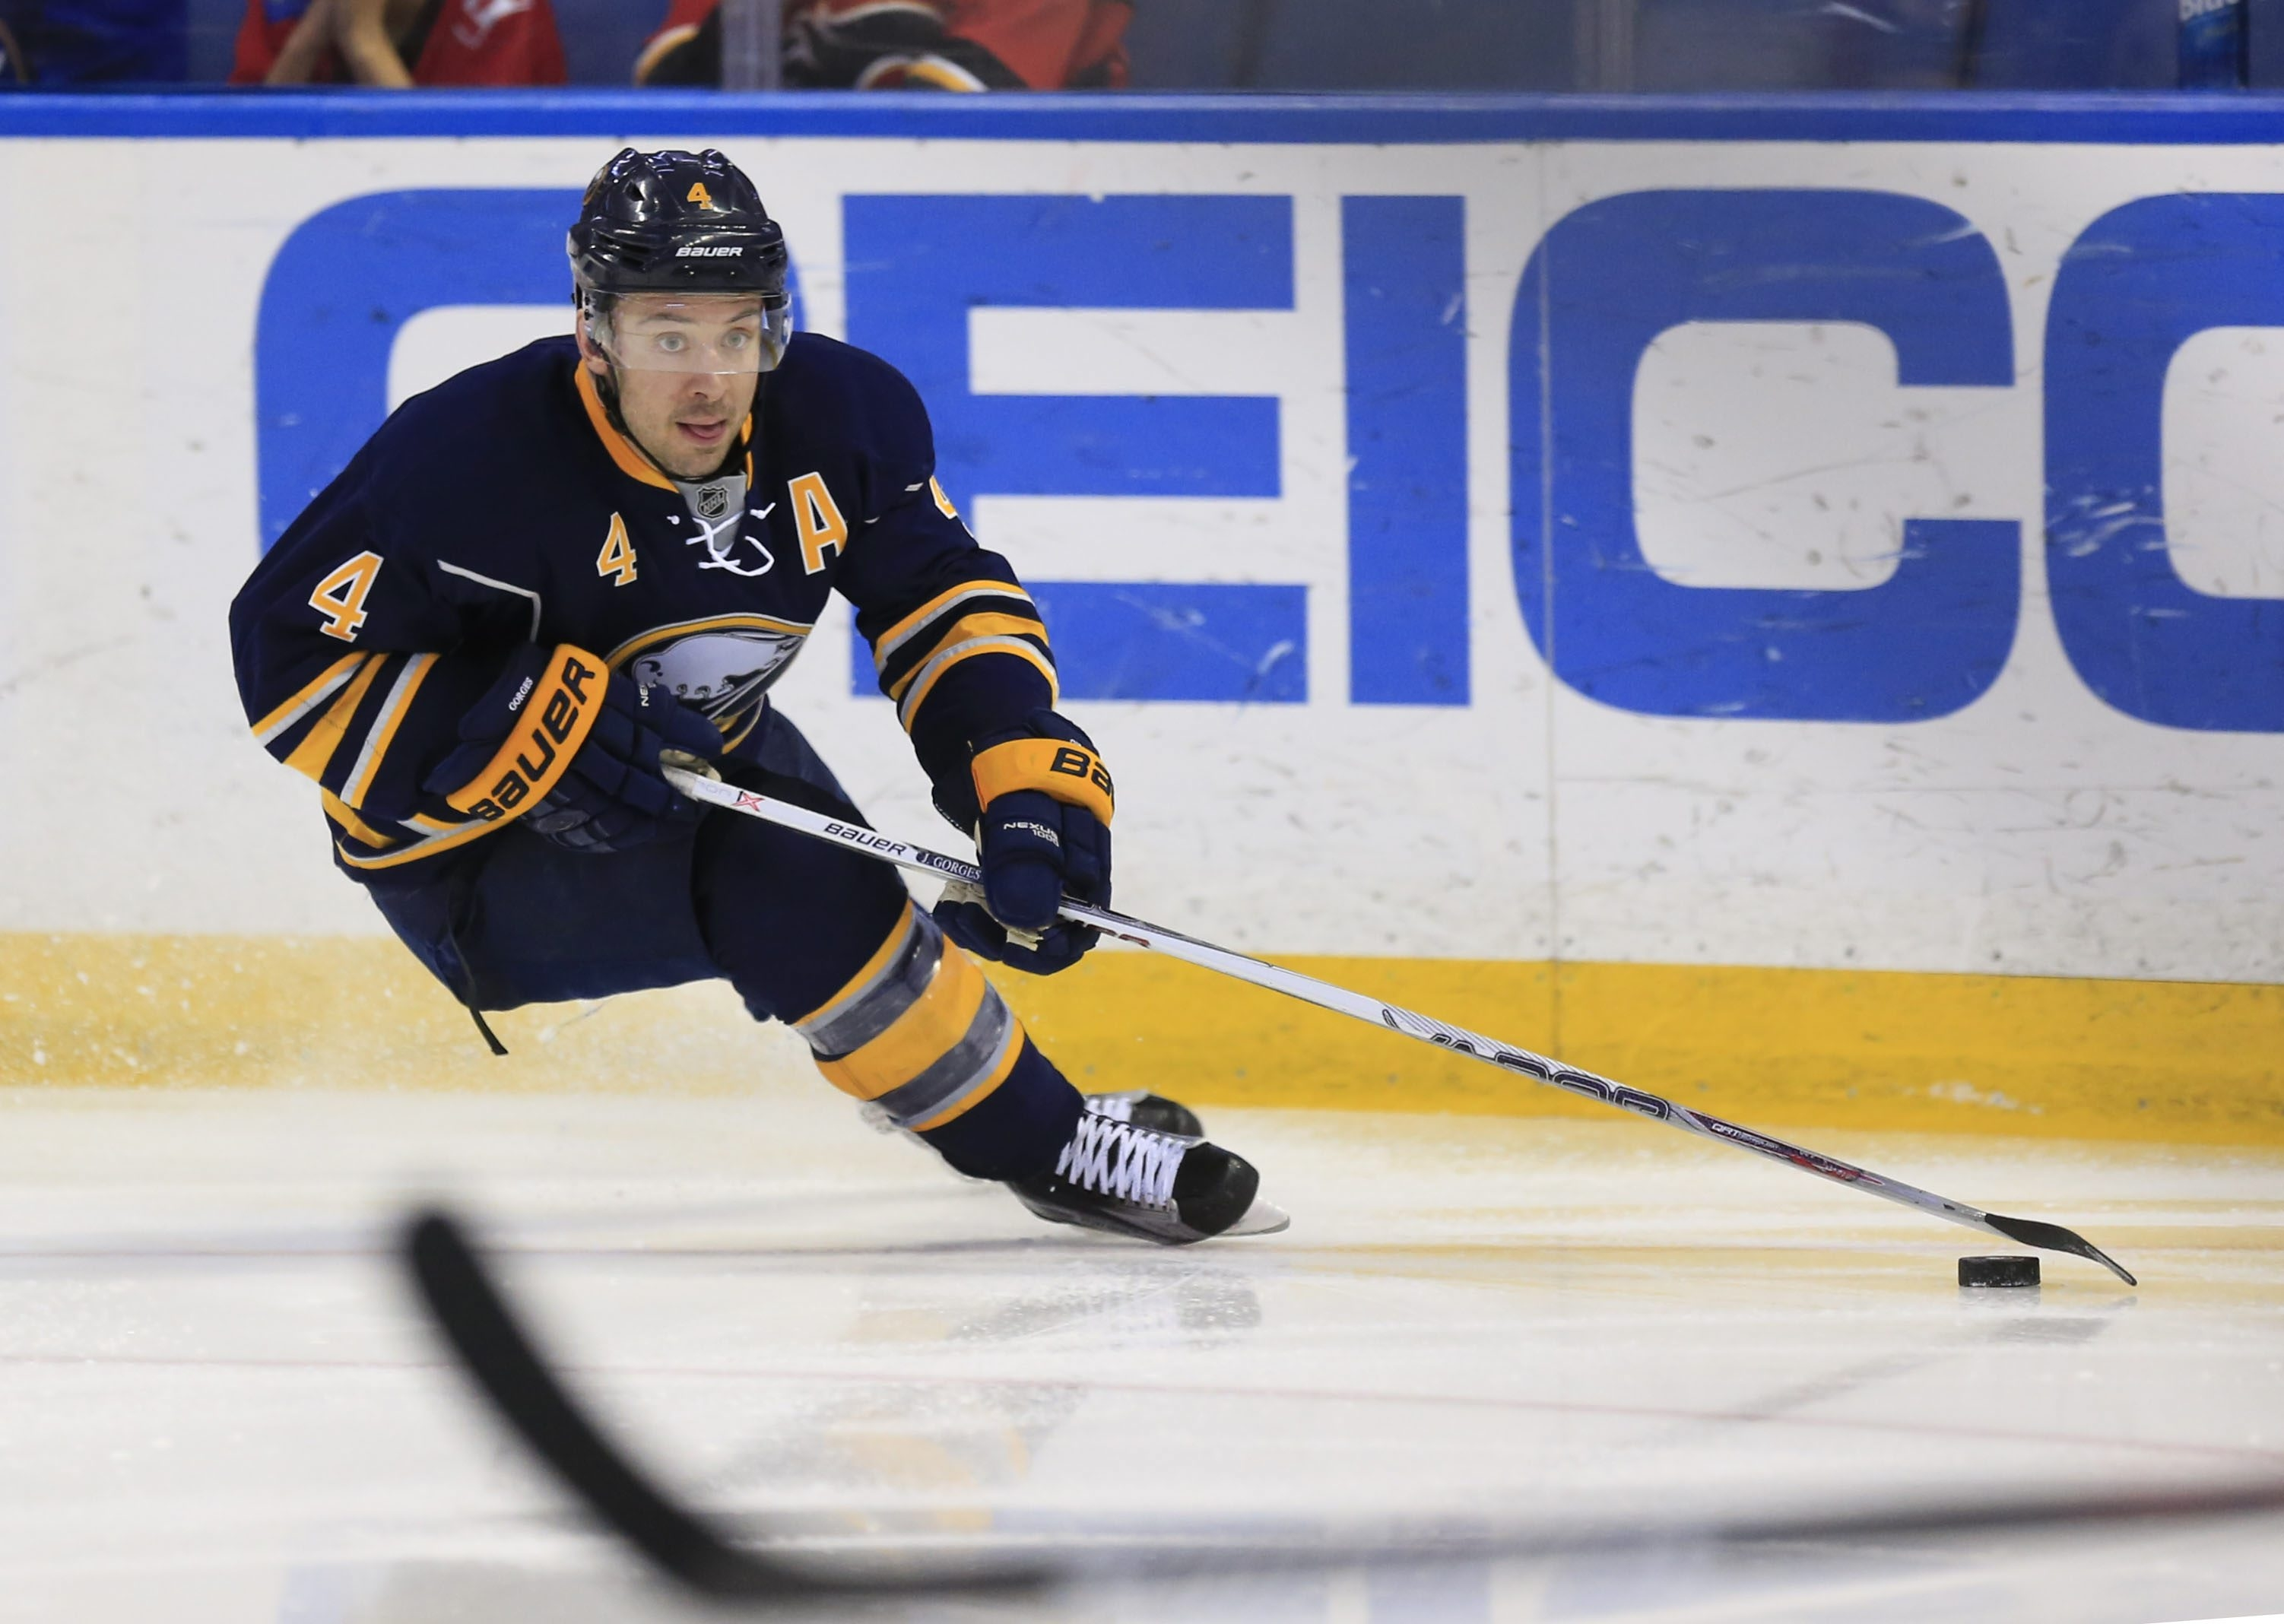 Sabres veteran defenseman Josh Gorges says the team is headed in the right direction.